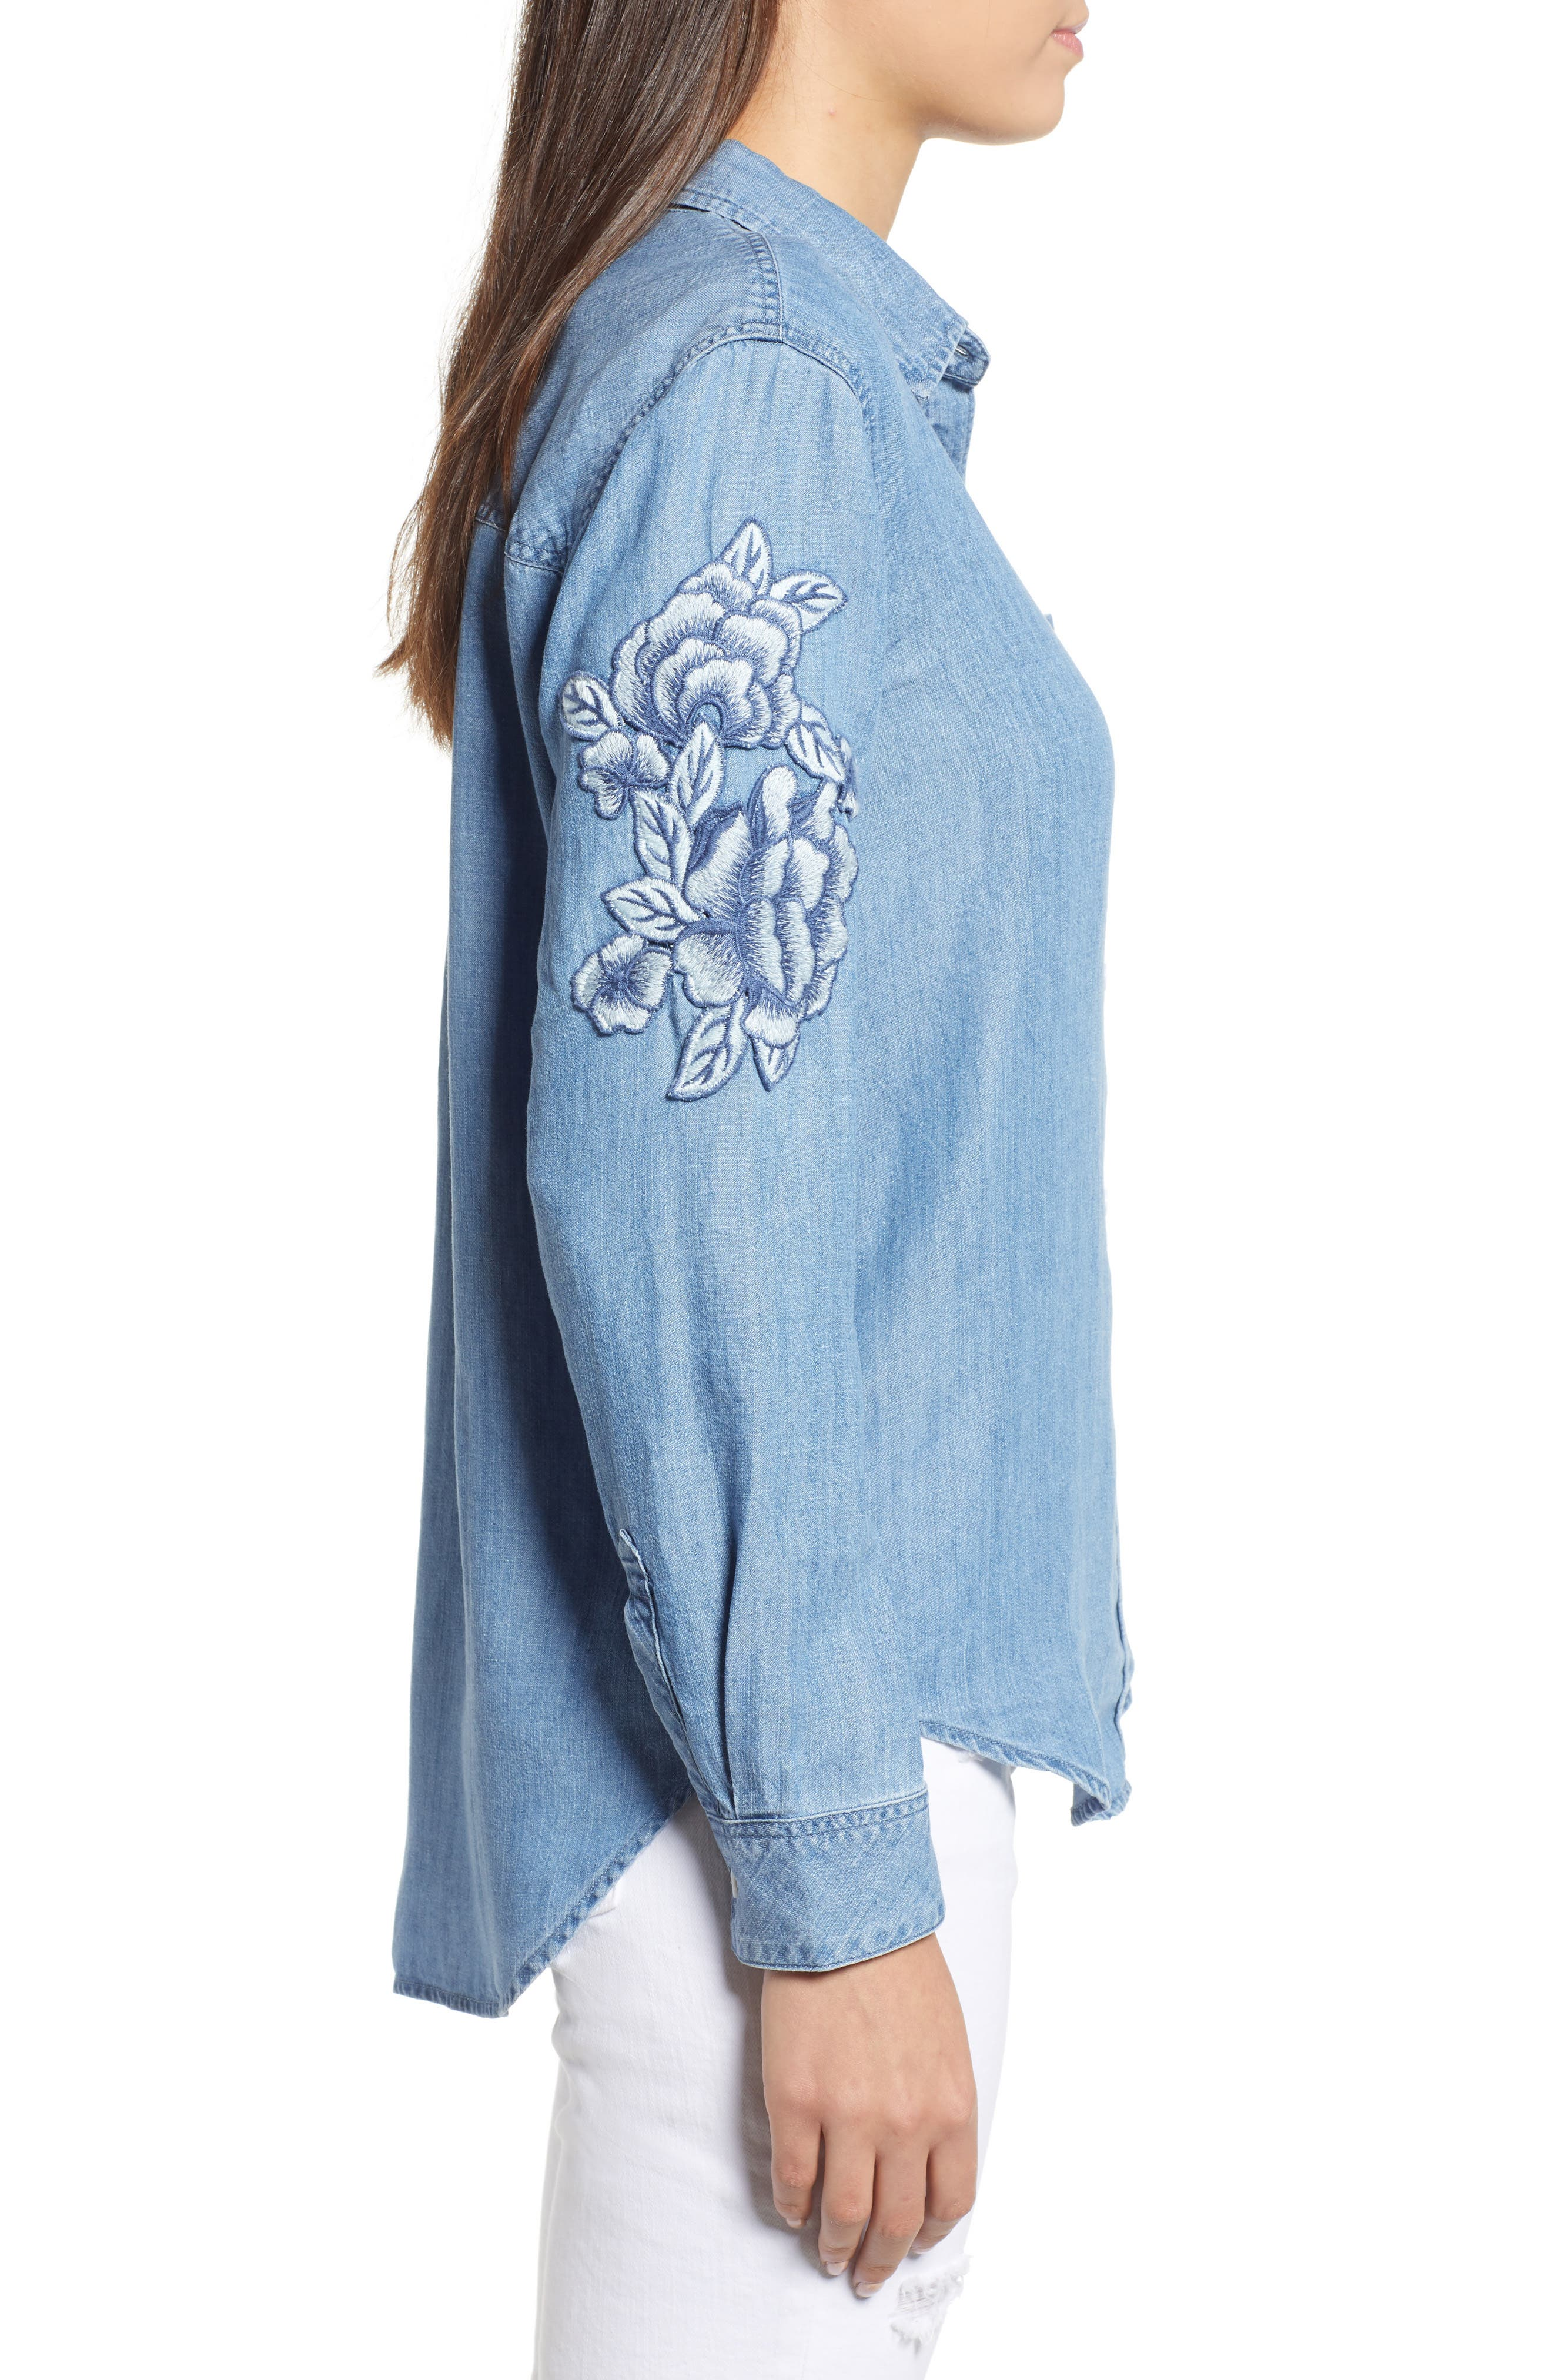 RAILS,                             Ingrid Embroidered Chambray Shirt,                             Alternate thumbnail 4, color,                             493